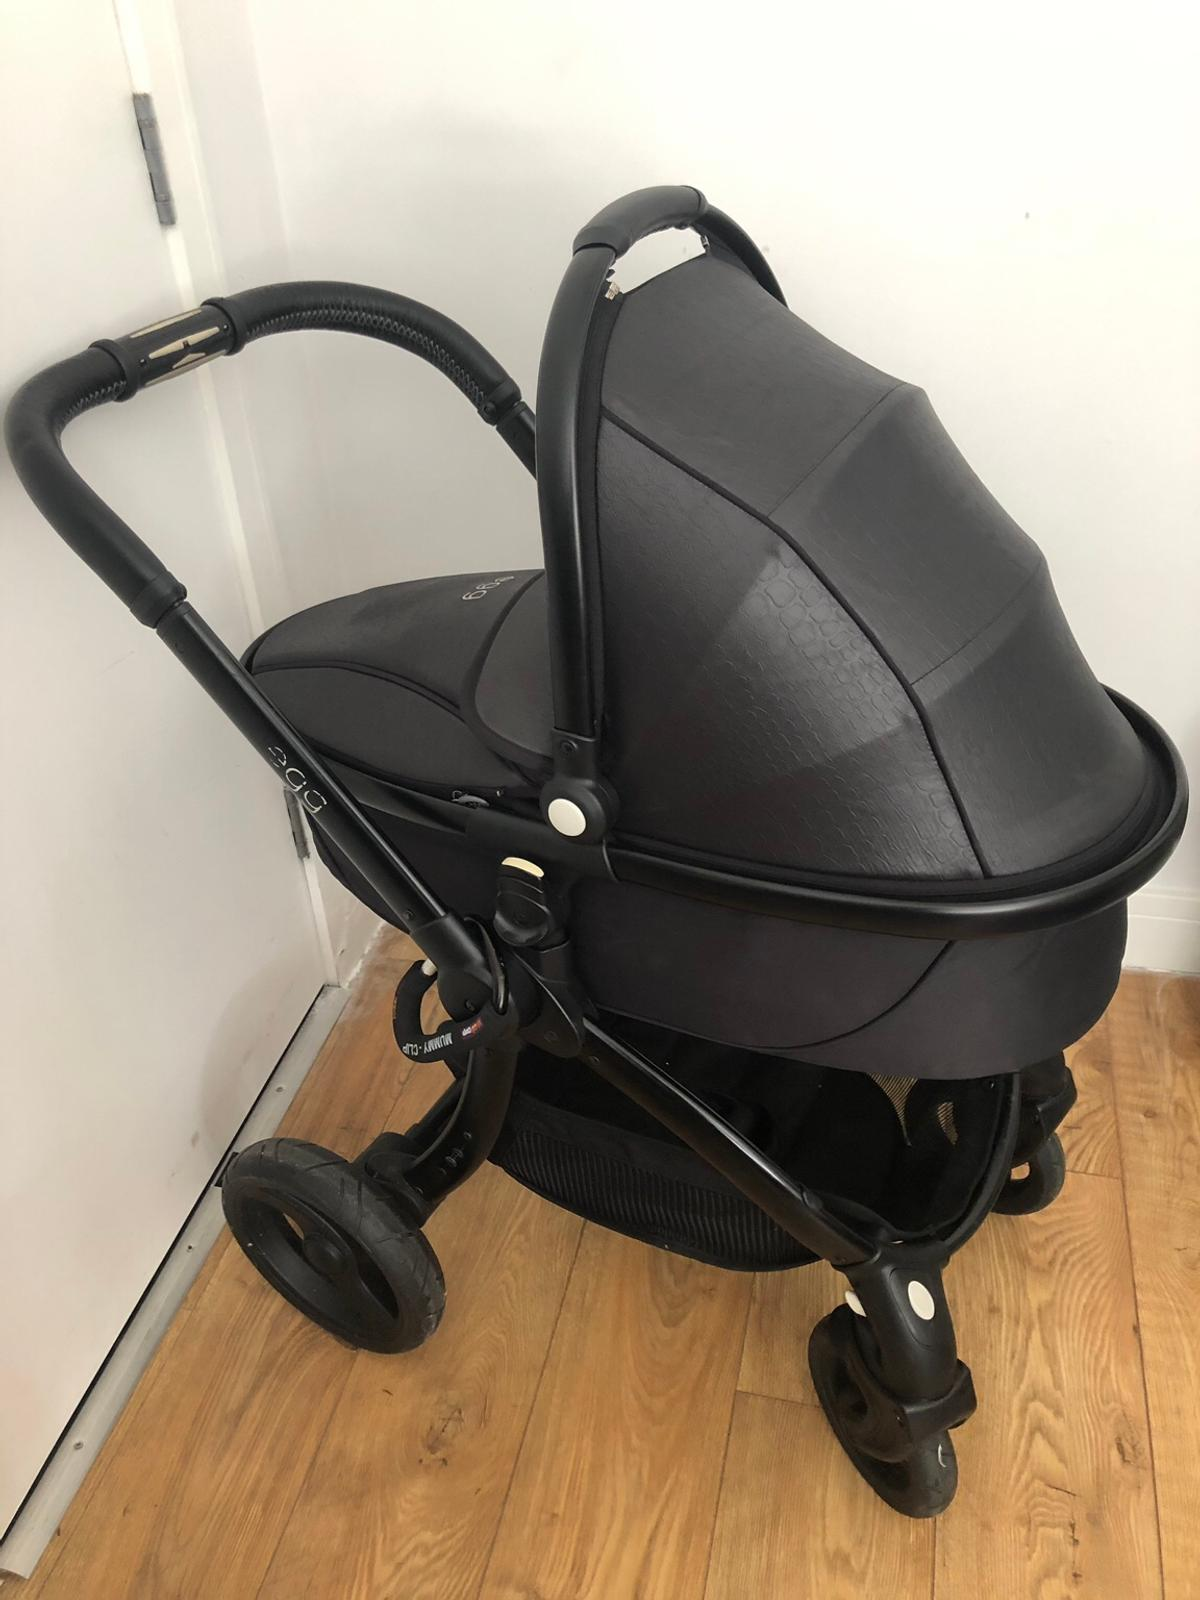 Limited Edition Egg Stroller Jurassic Black In Nw10 London For 600 00 For Sale Shpock